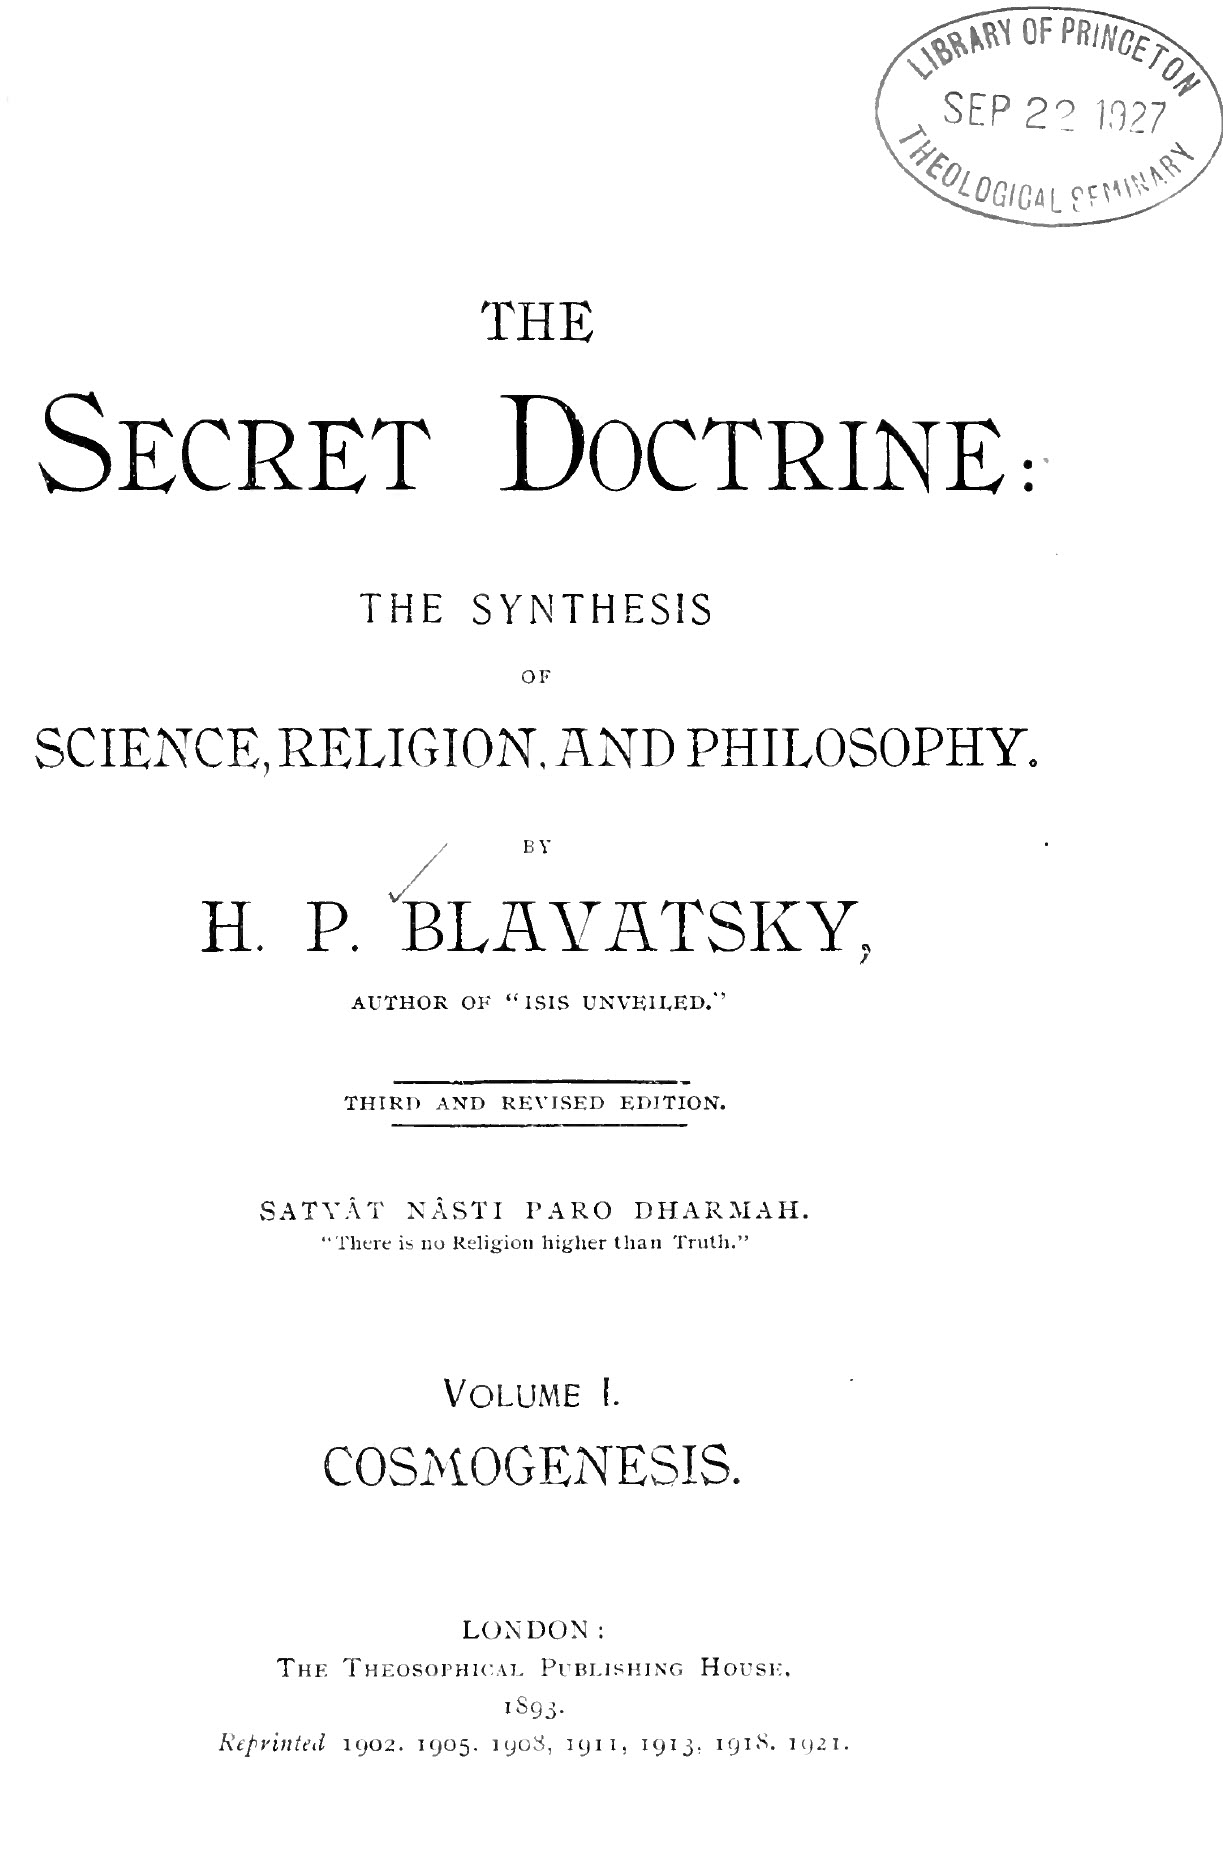 Blavatsky, Secret Doctrine Volume 1, Cosmogenesis, 3rd Edition, PDF